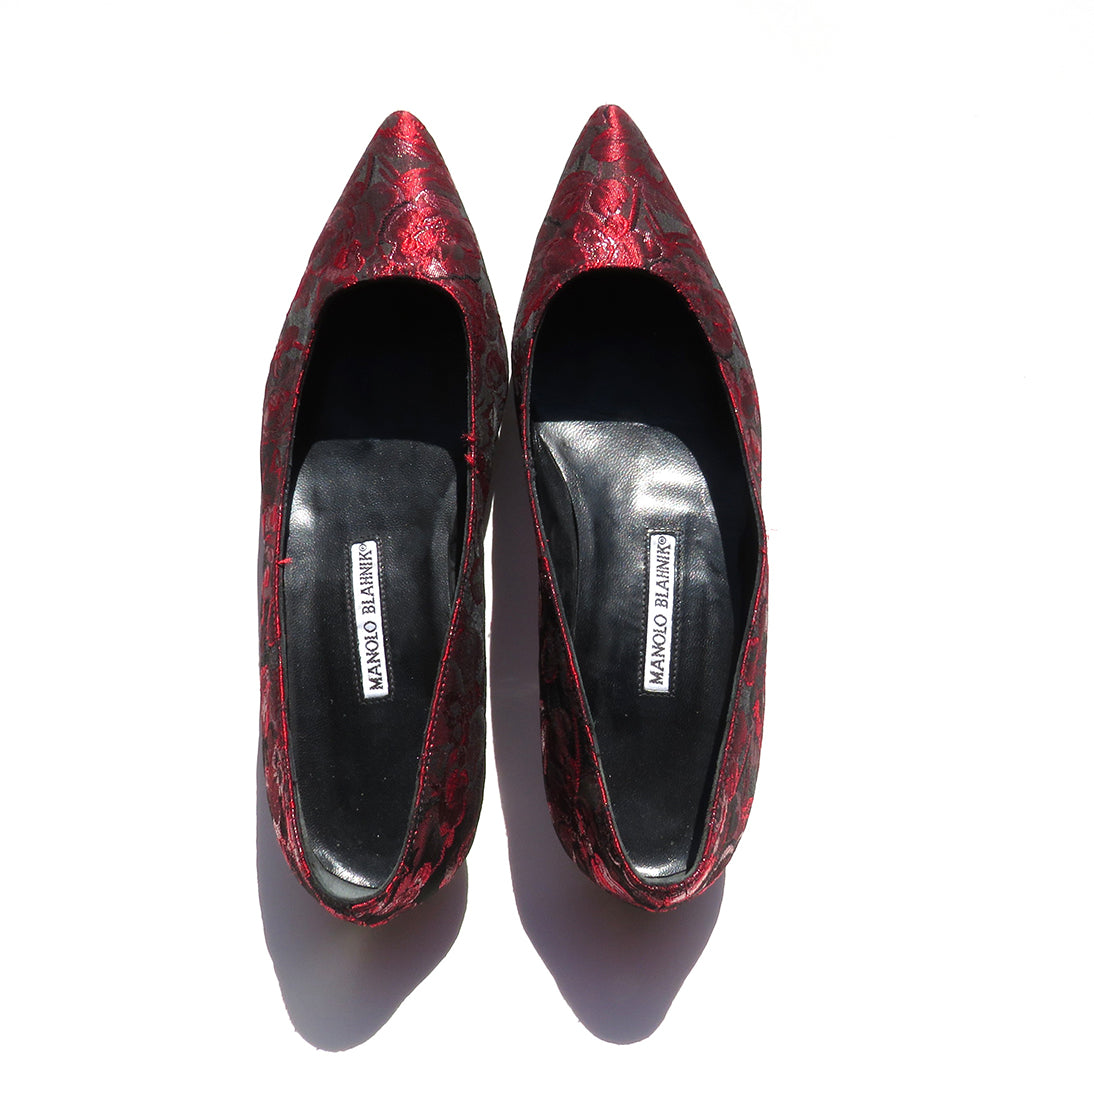 'Sold' MANOLO BLAHNIK Red Black Floral Brocade Fabric Pointed Toe Ballet Flats 39.5 GUC